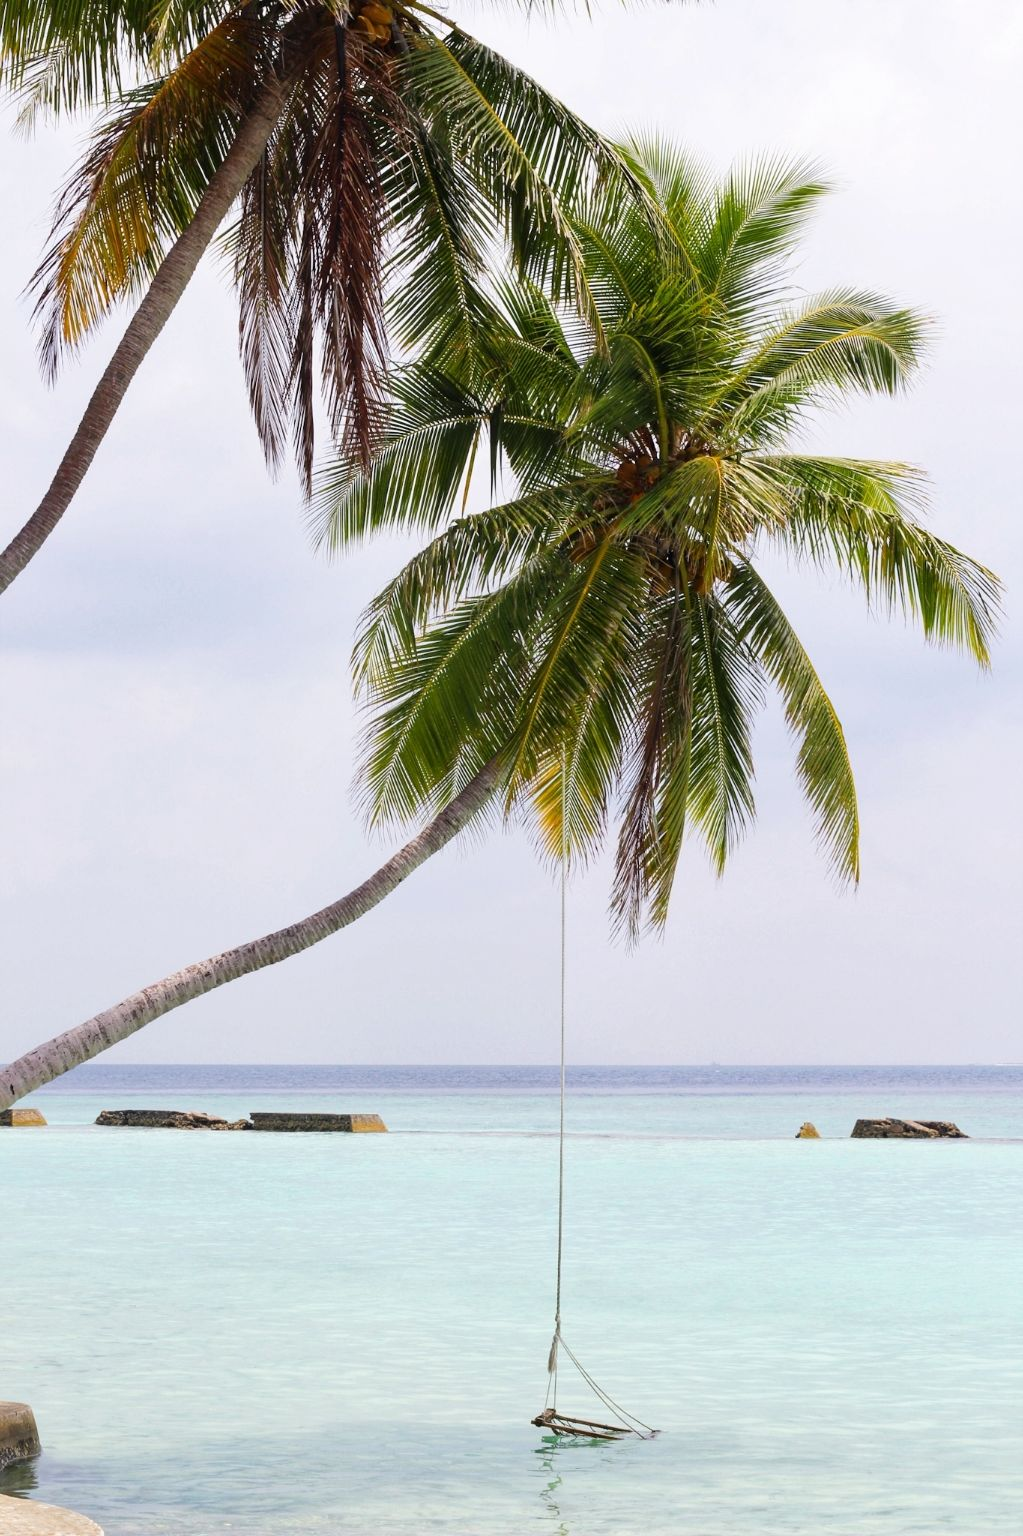 Photo of Maldive Islands By 1TeaspoonLove ®